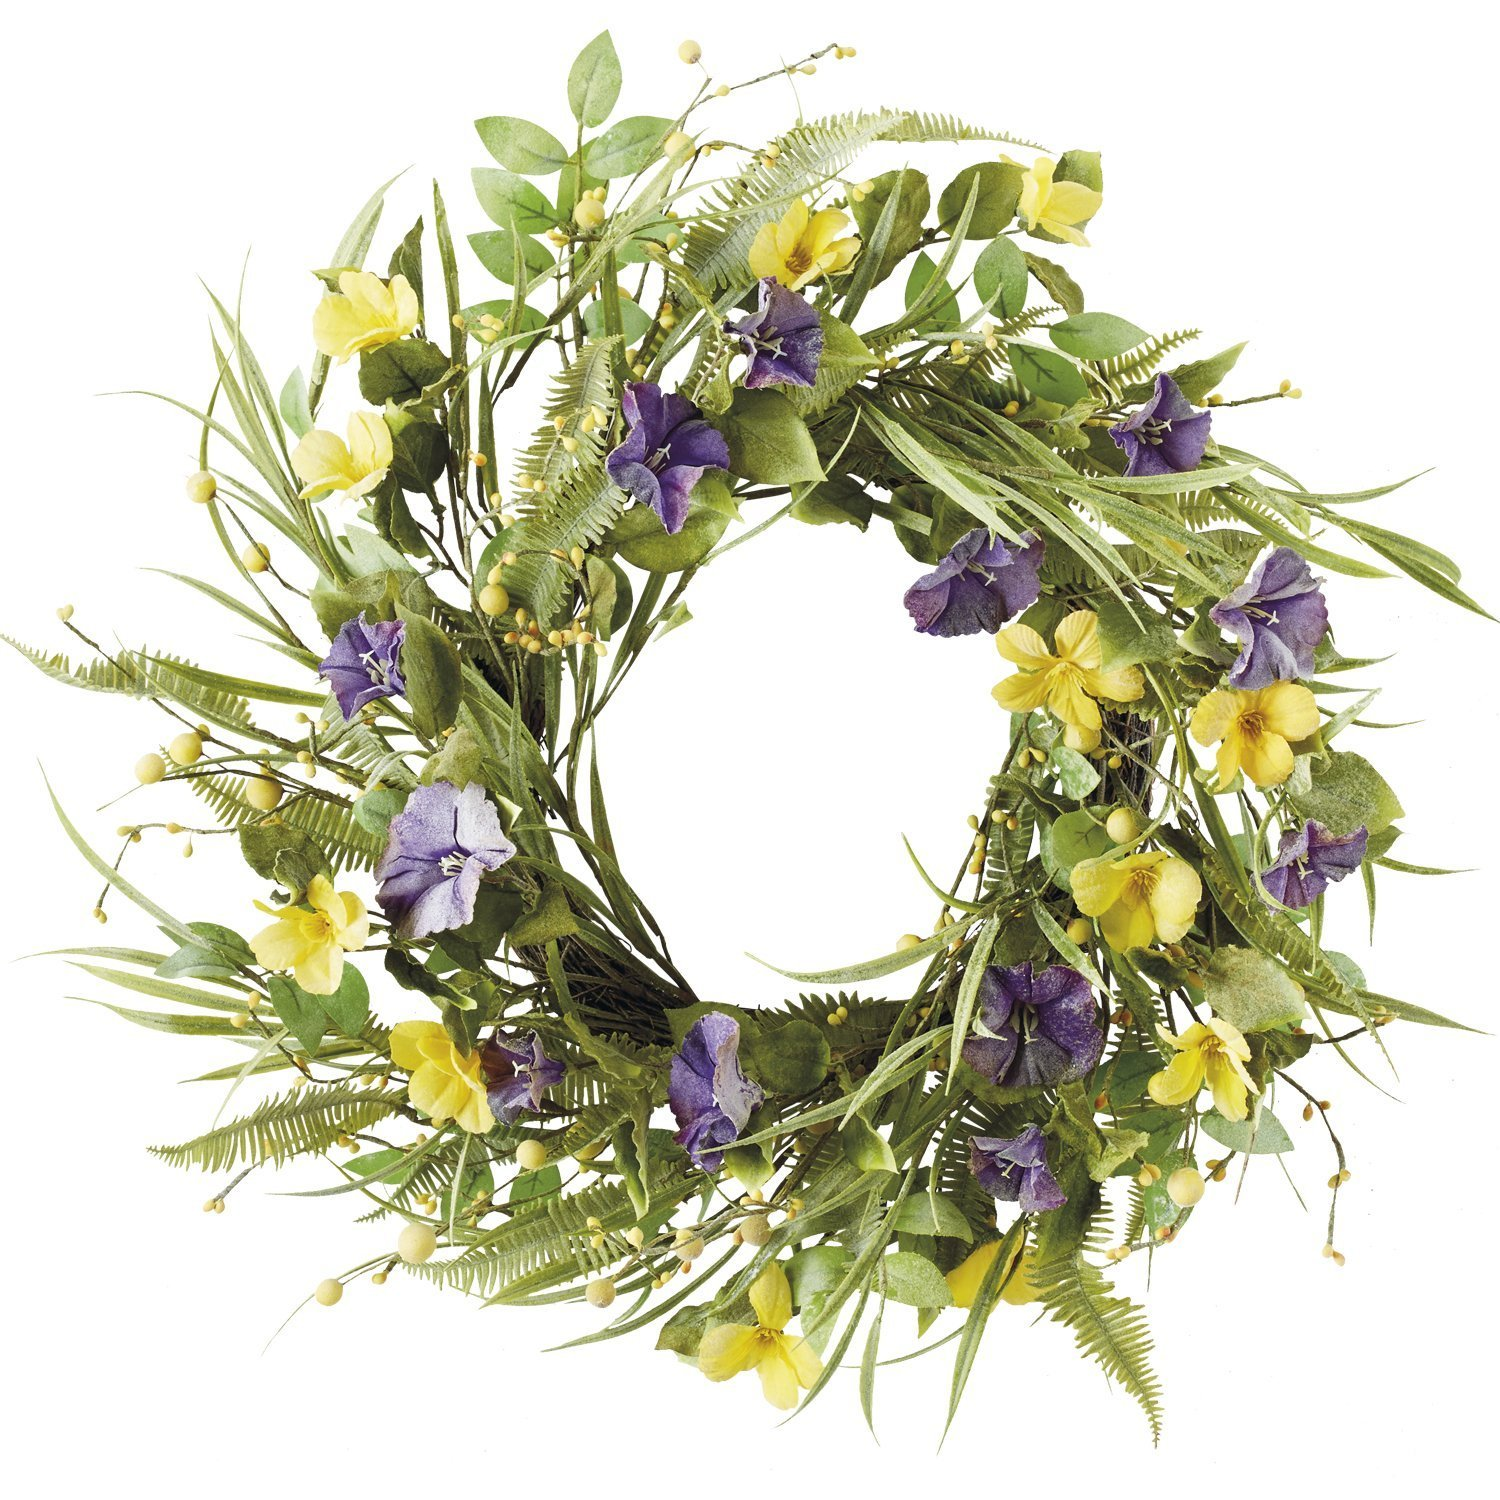 DII Decorative Leaves & Flowers 20'' Spring Wreath for Front Door or Indoor Wall Décor to Celebrate Easter & Spring/Summer Season